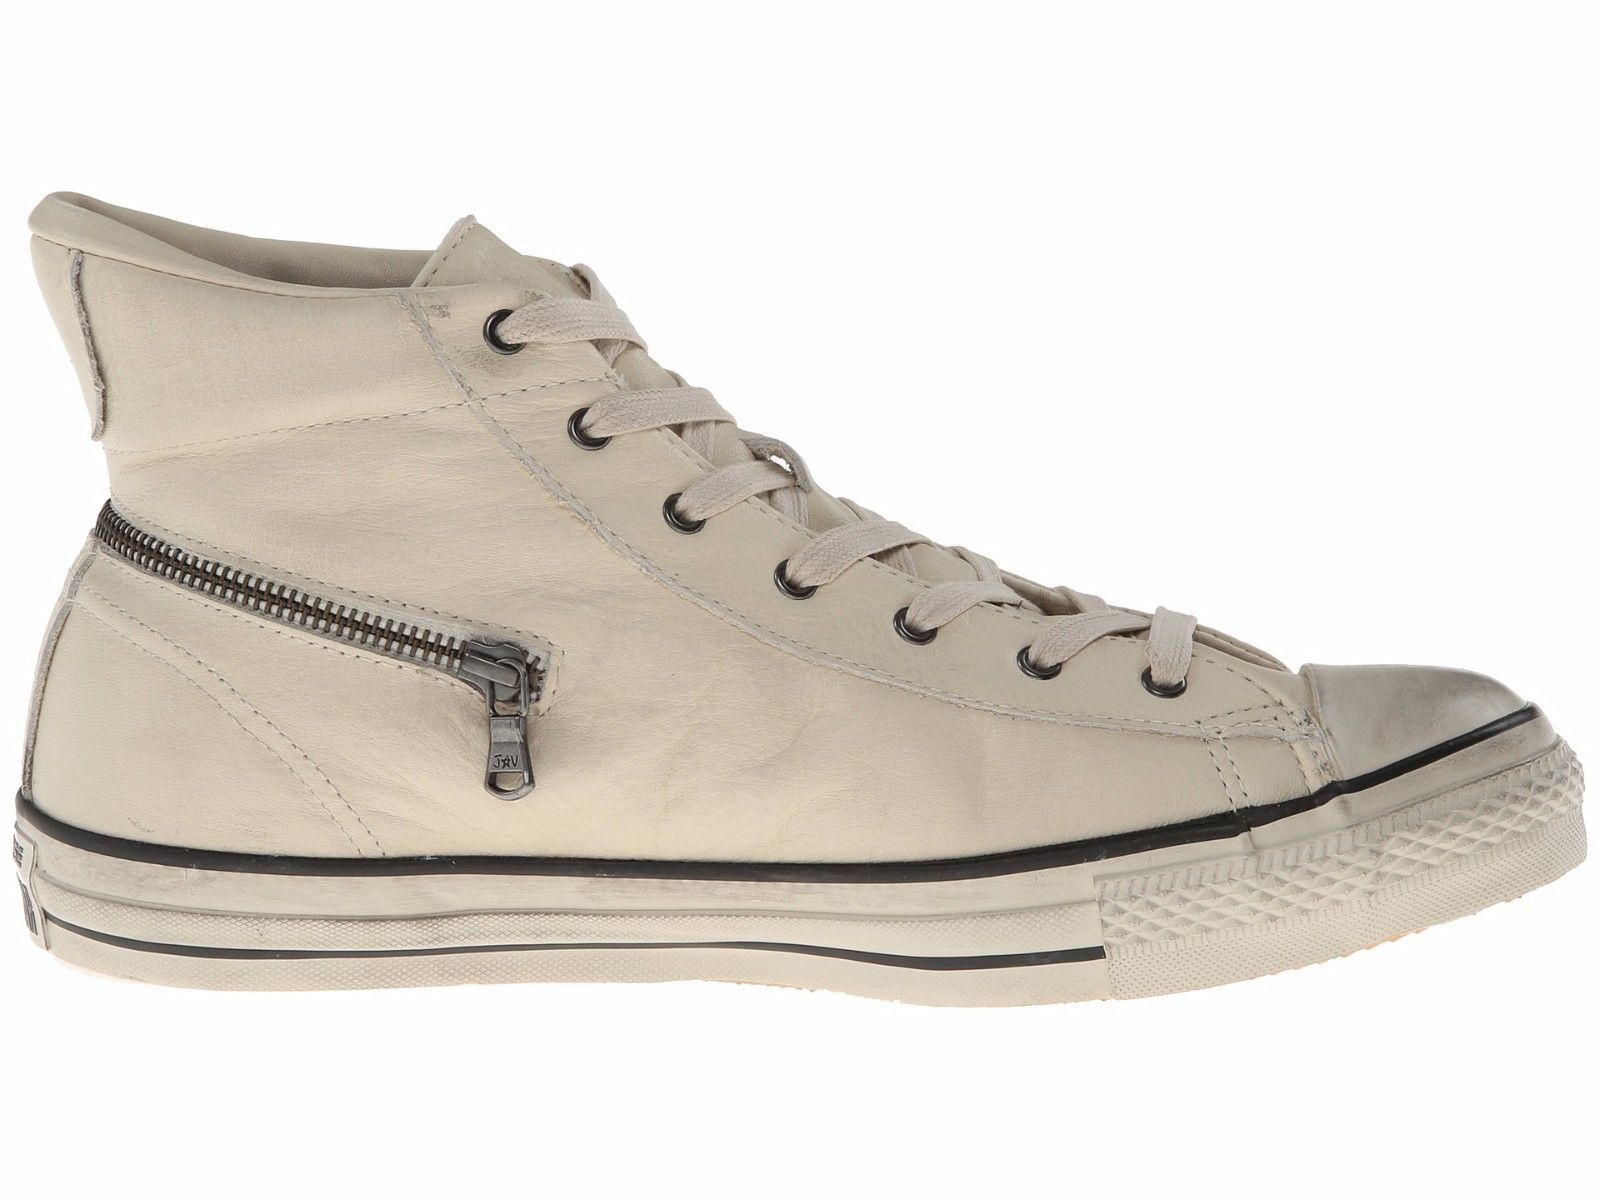 a2637111fe372e CONVERSE BY JOHN VARVATOS Leather Mens Sneaker Shoe! Reg 185 Limited Sale   99